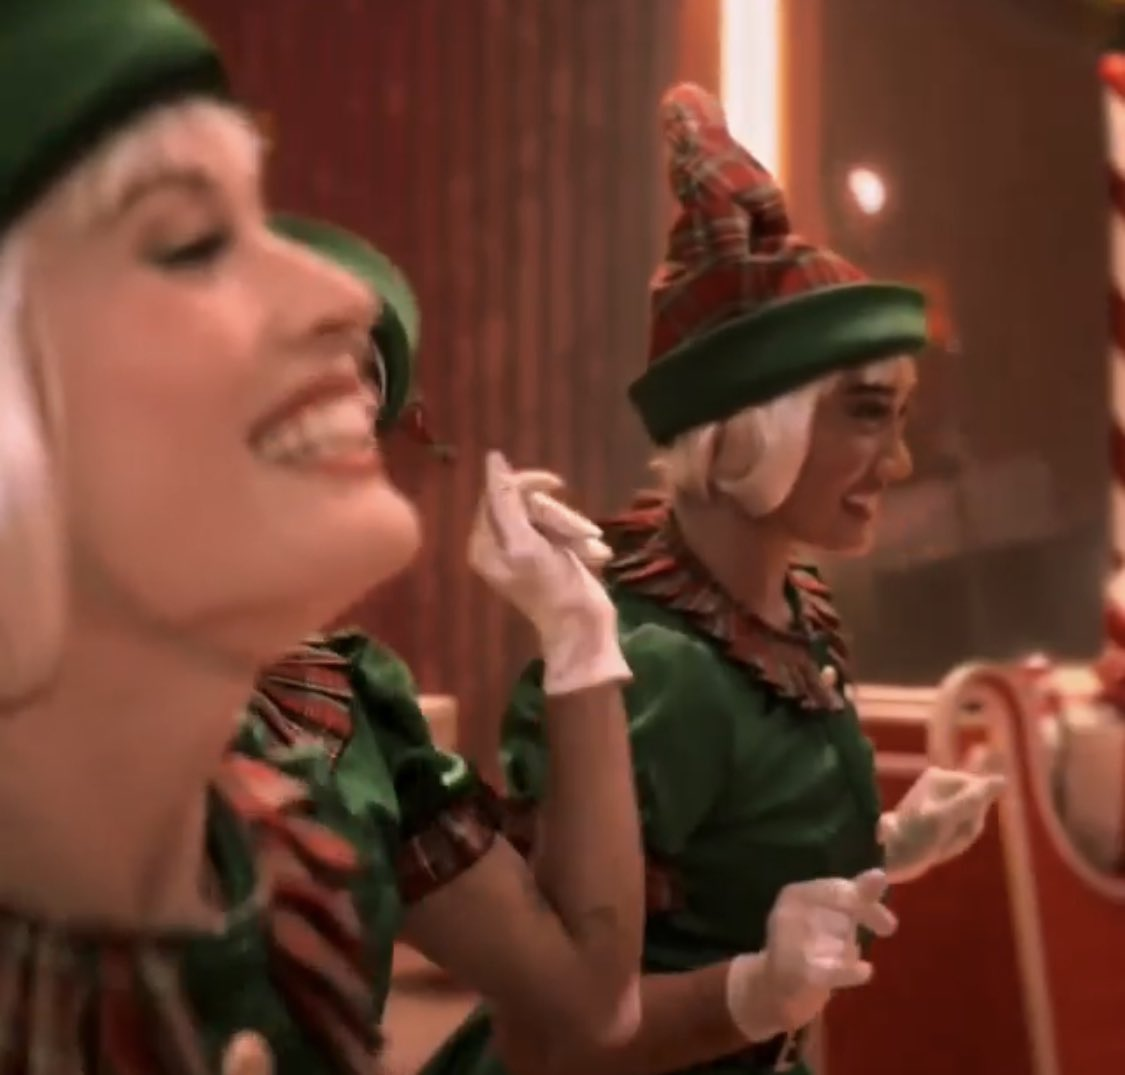 Is this #gwenstefani here in the #OhSanta Video?